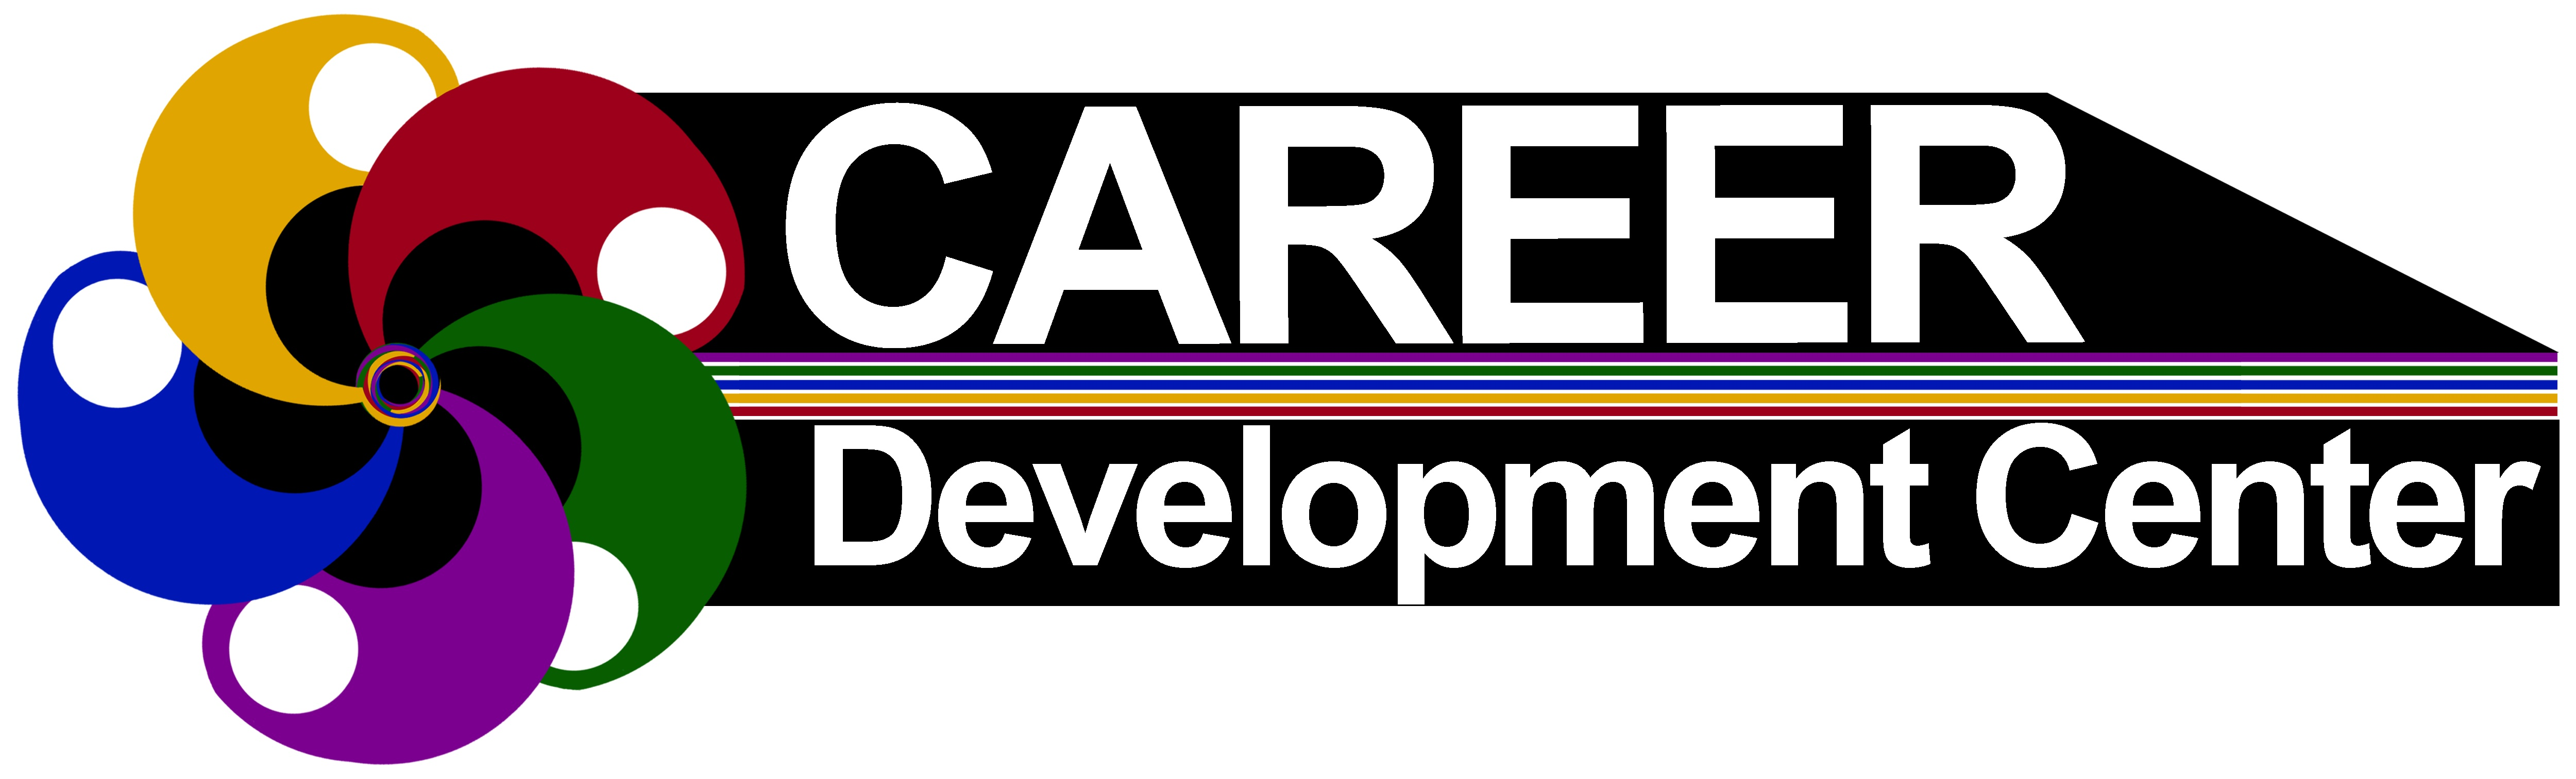 UIS Career Development Center